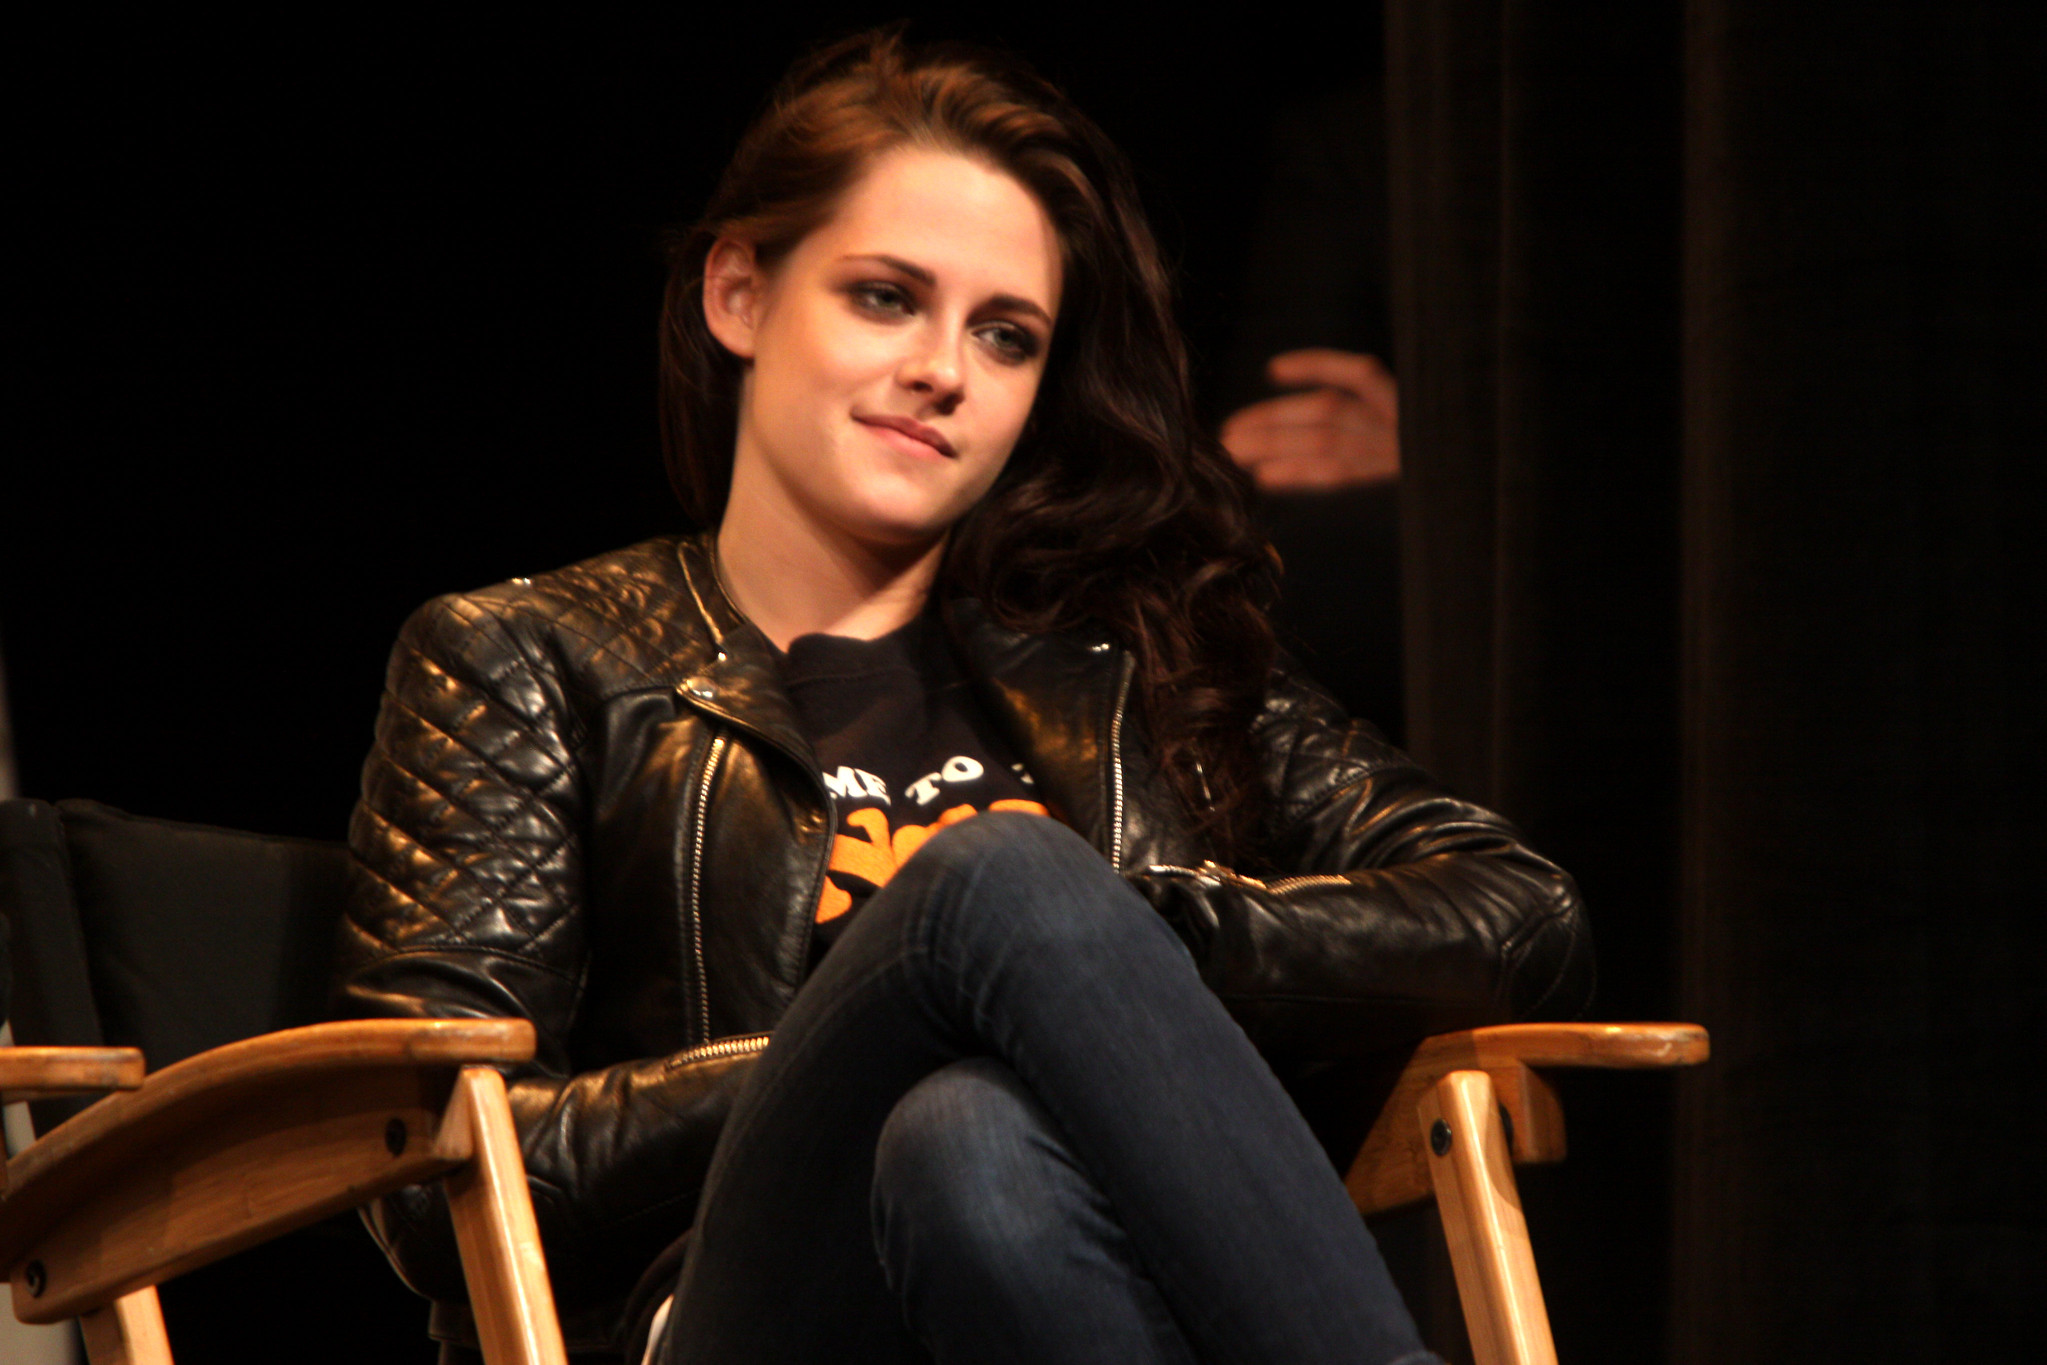 Kristen Stewart Cheating, Scandal And Personal Life